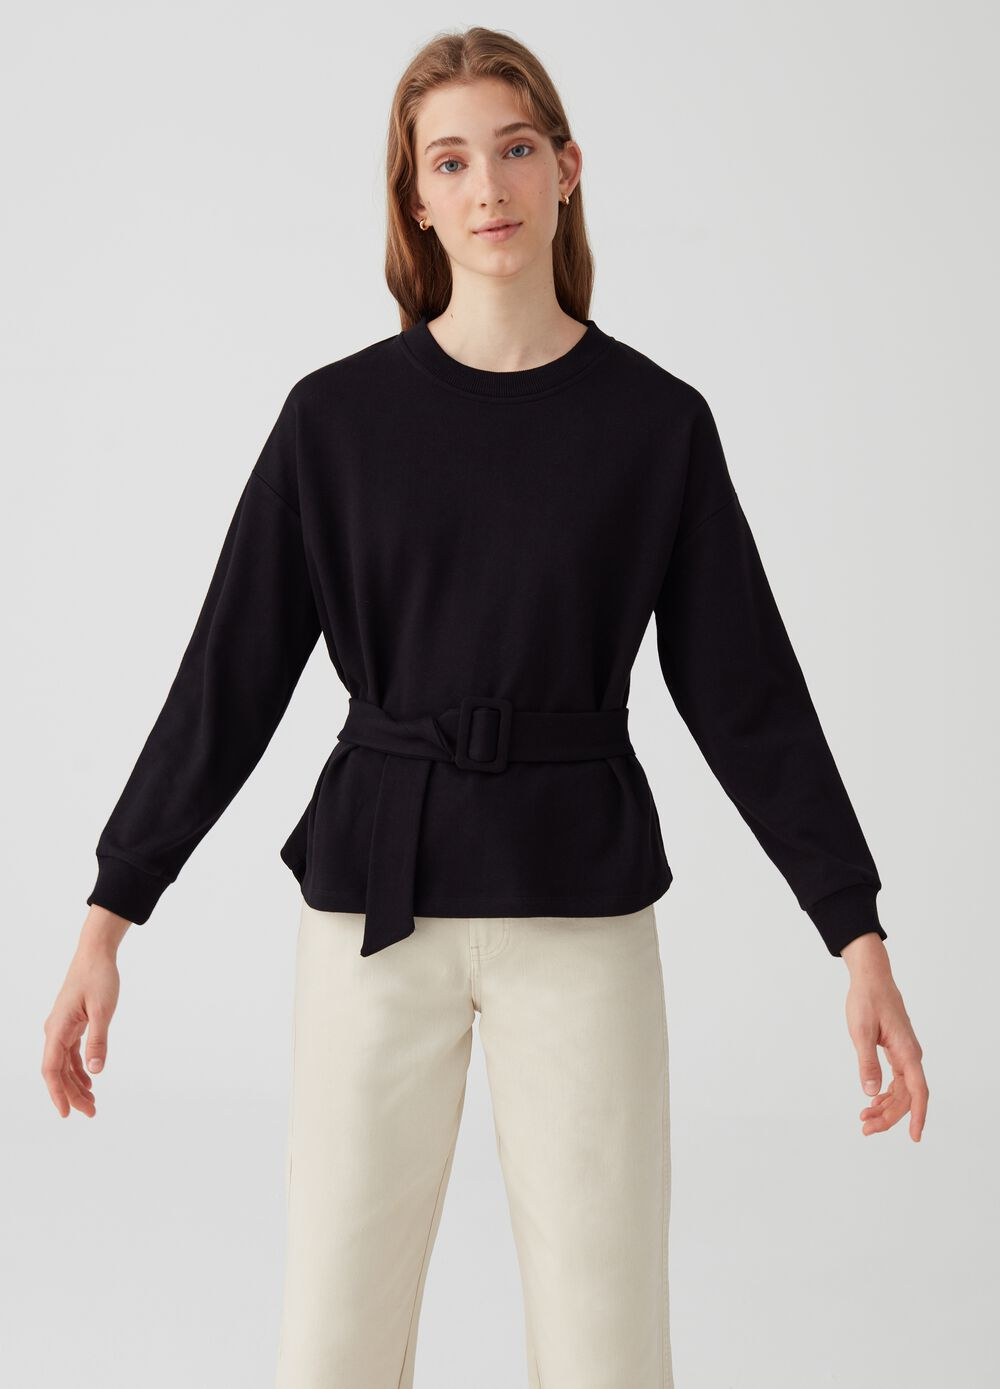 Round-neck sweatshirt belt with buckle